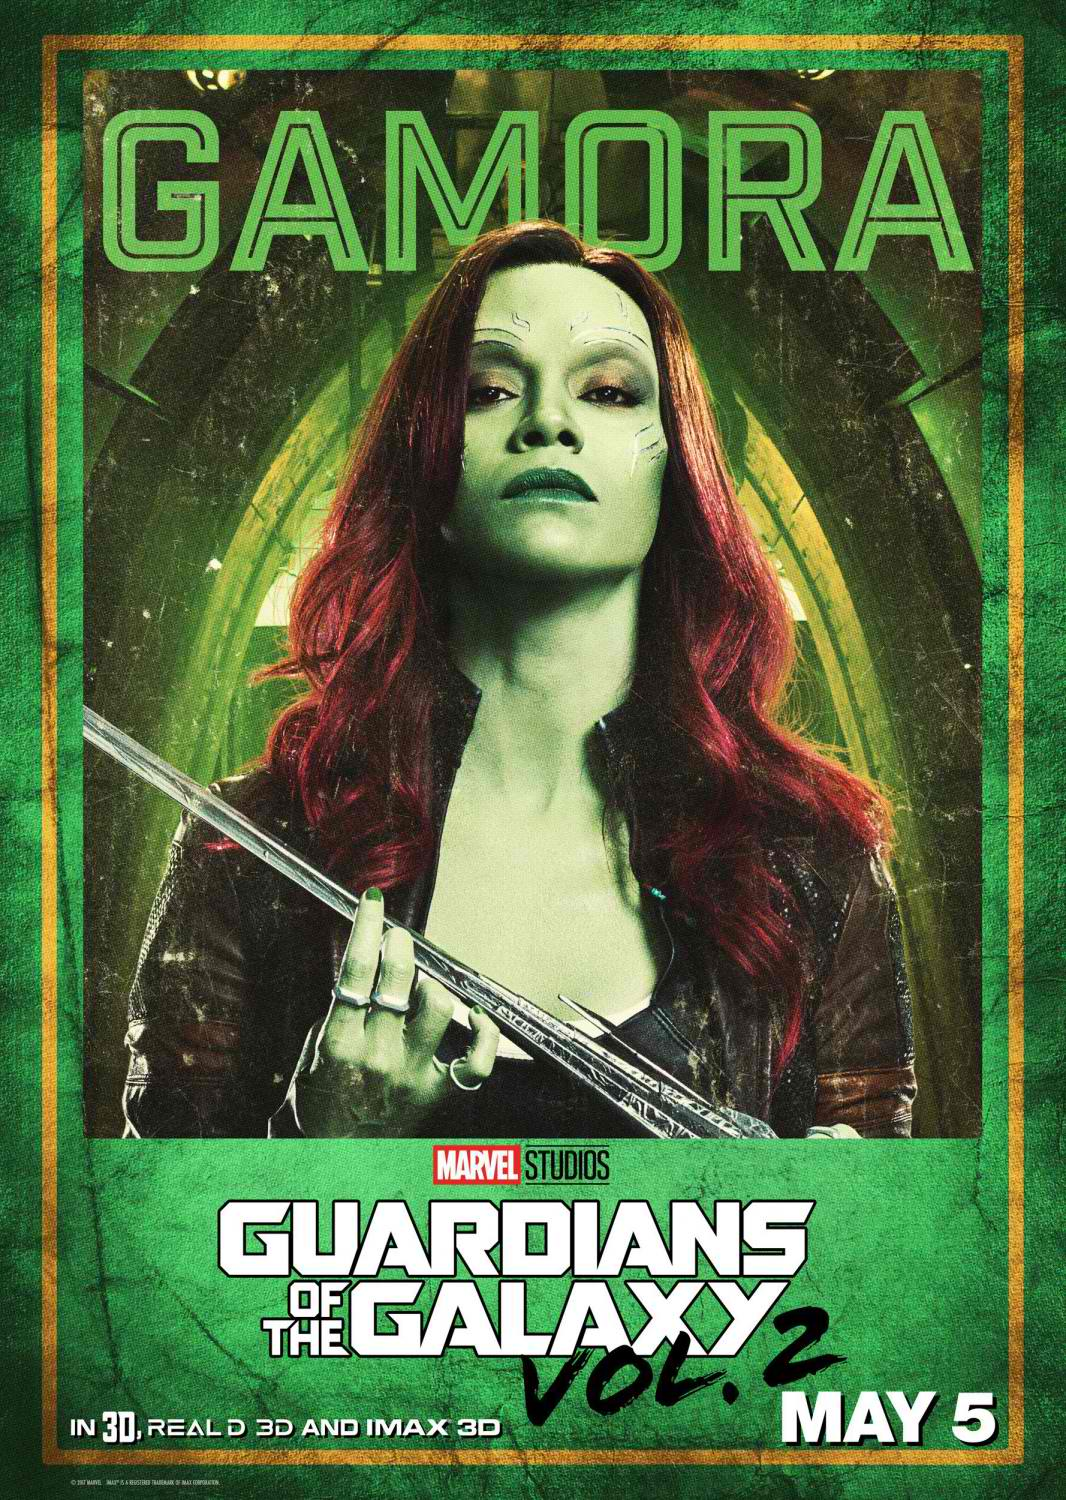 Guardians If The Galaxy 2